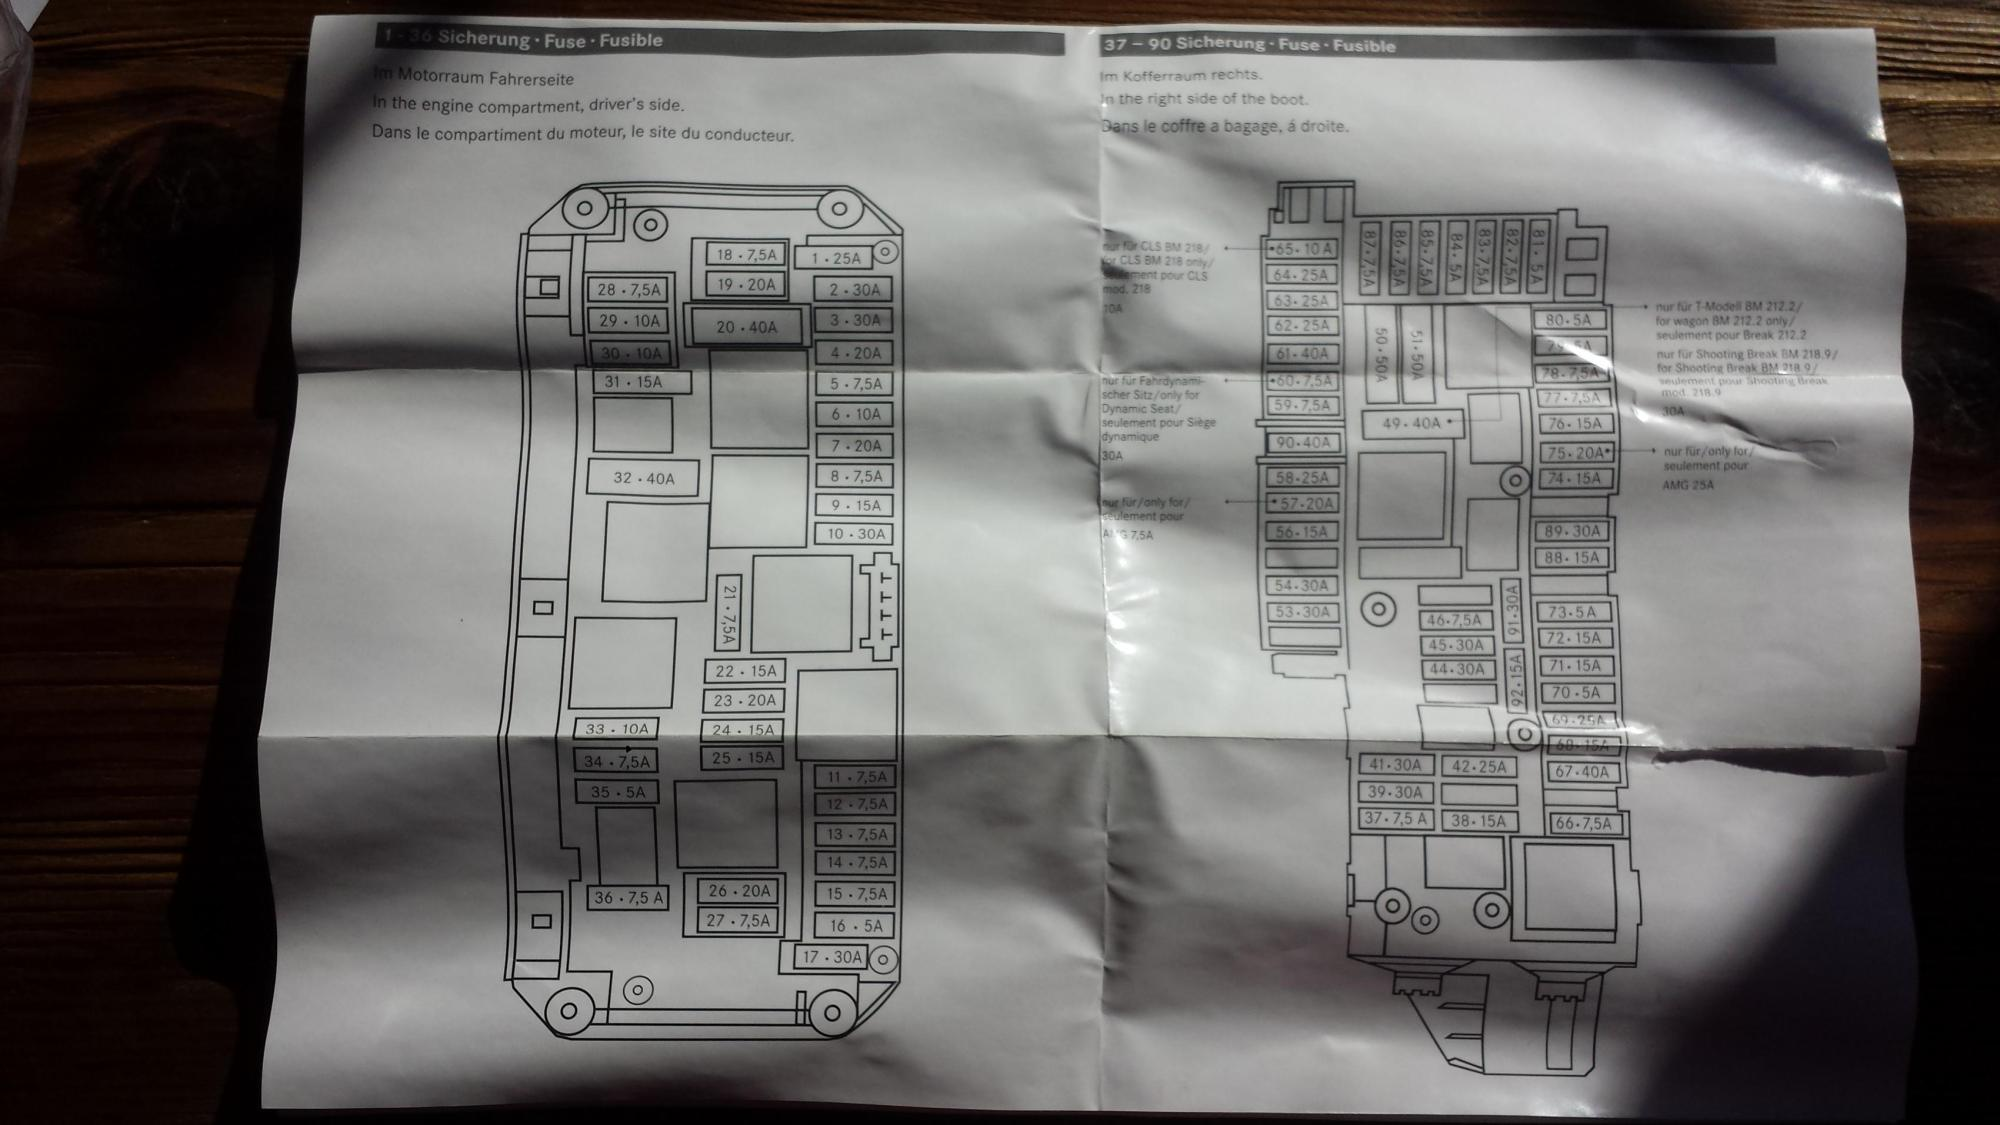 hight resolution of 2013 w212 e350 eclass fuse panel diagram chart mbworld org forums rh mbworld org 2004 ford